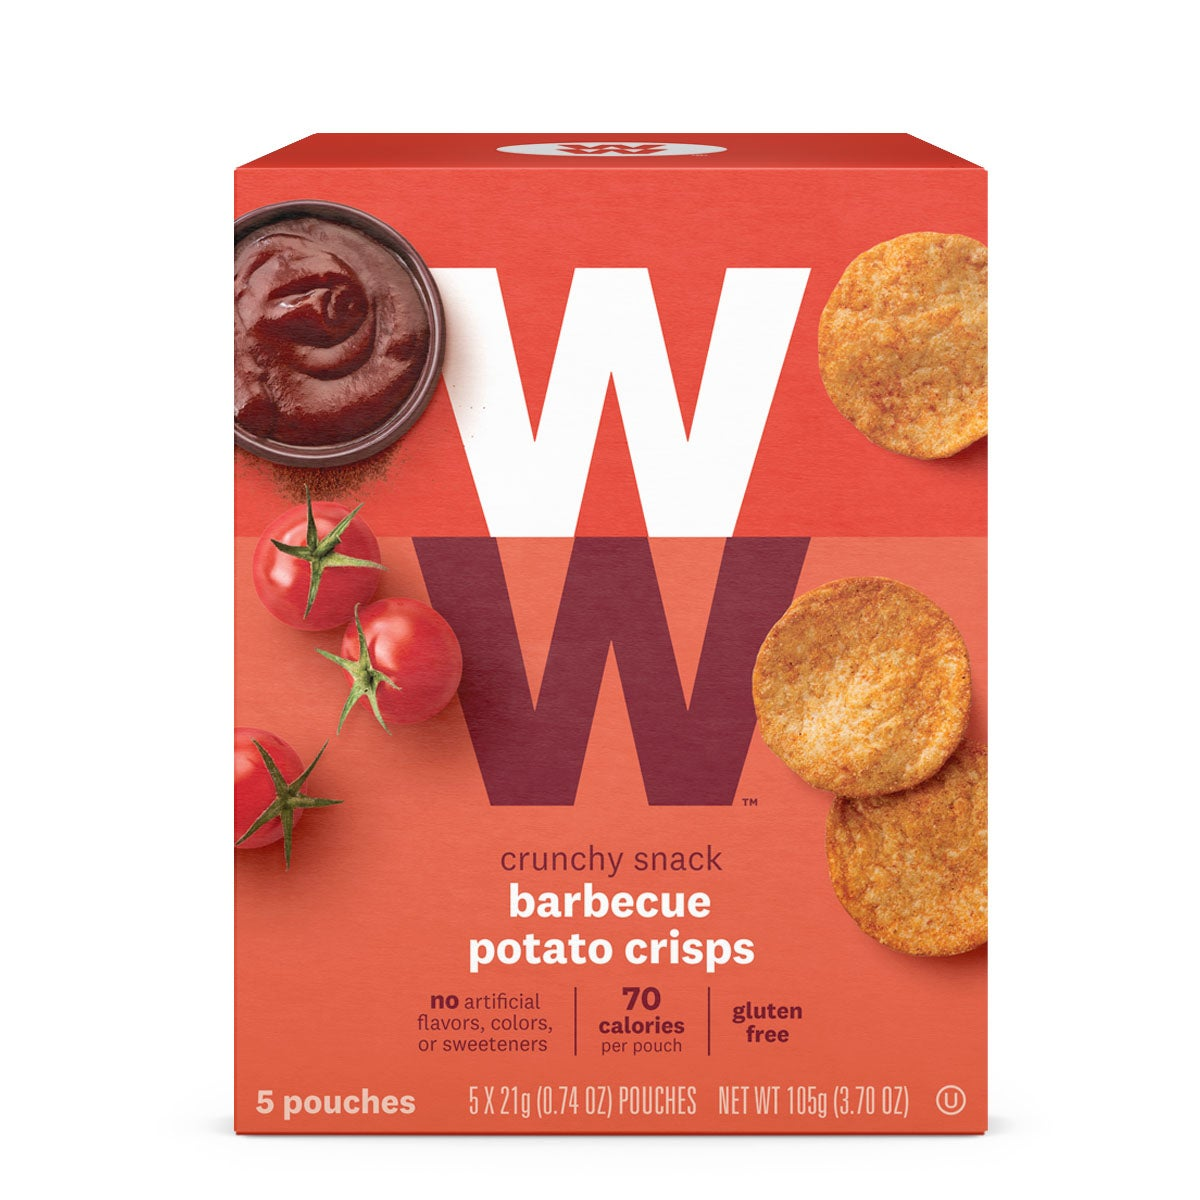 Barbecue Potato Crisps - Pack of 24